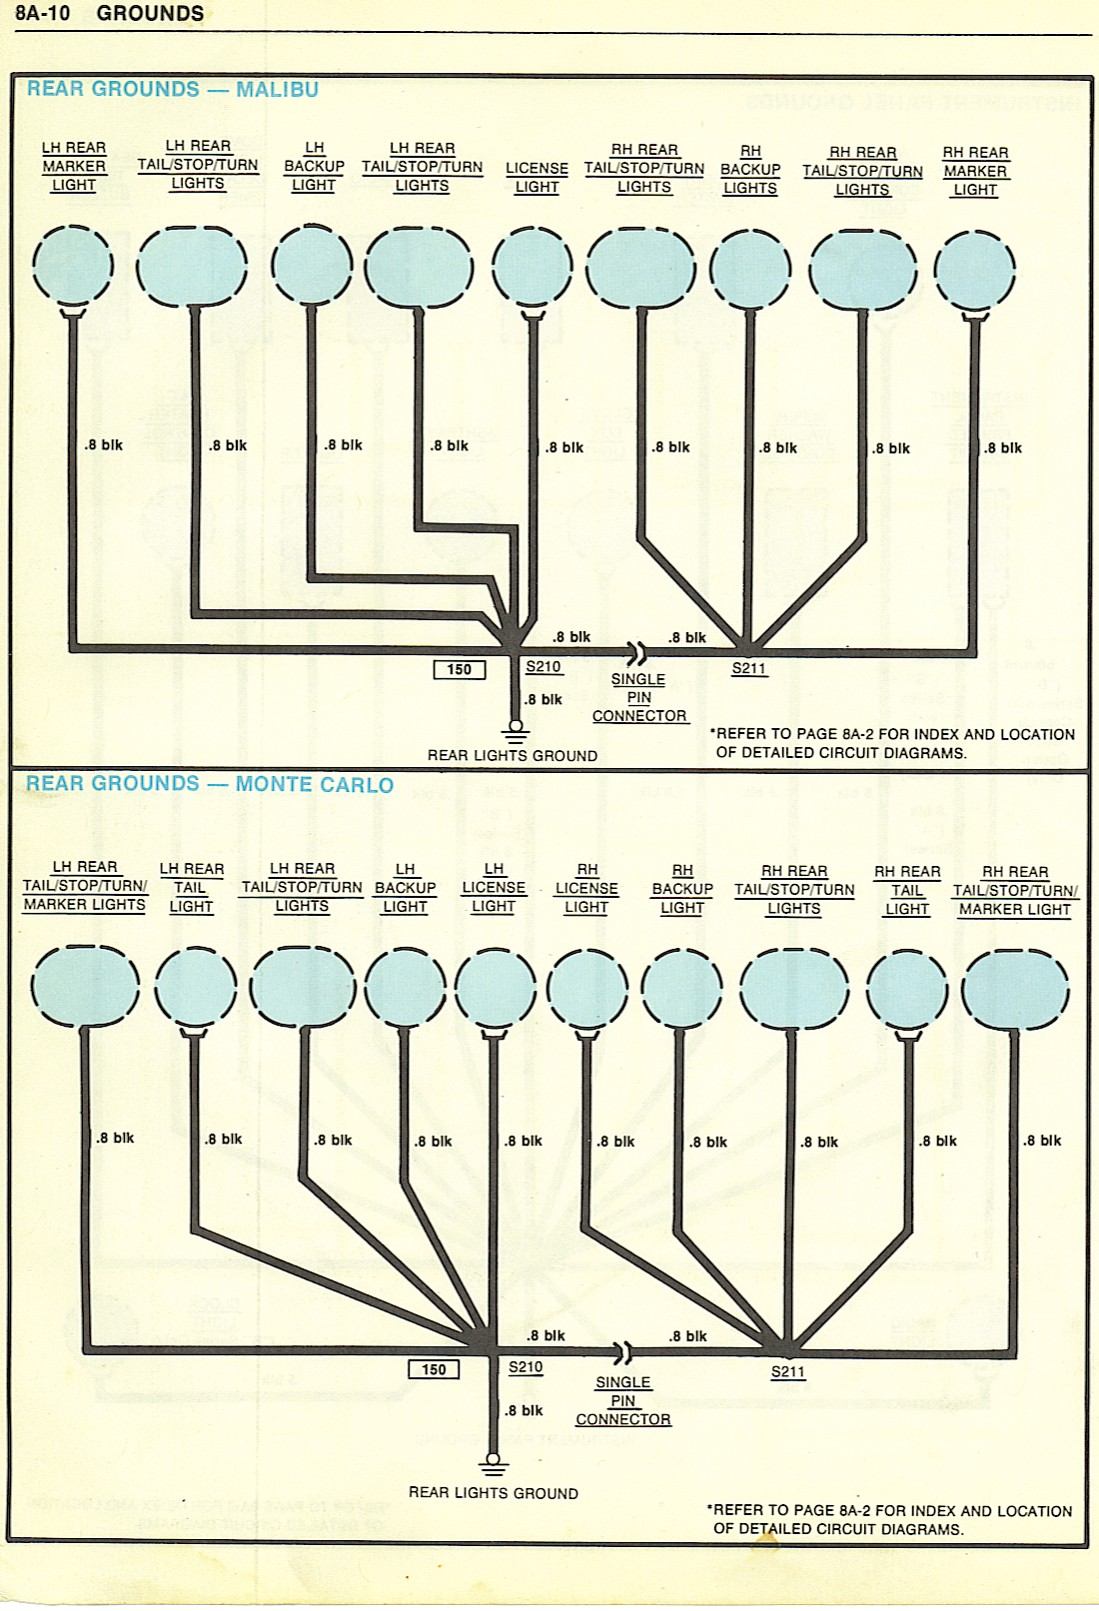 hight resolution of 1980 camaro headlight wiring diagram